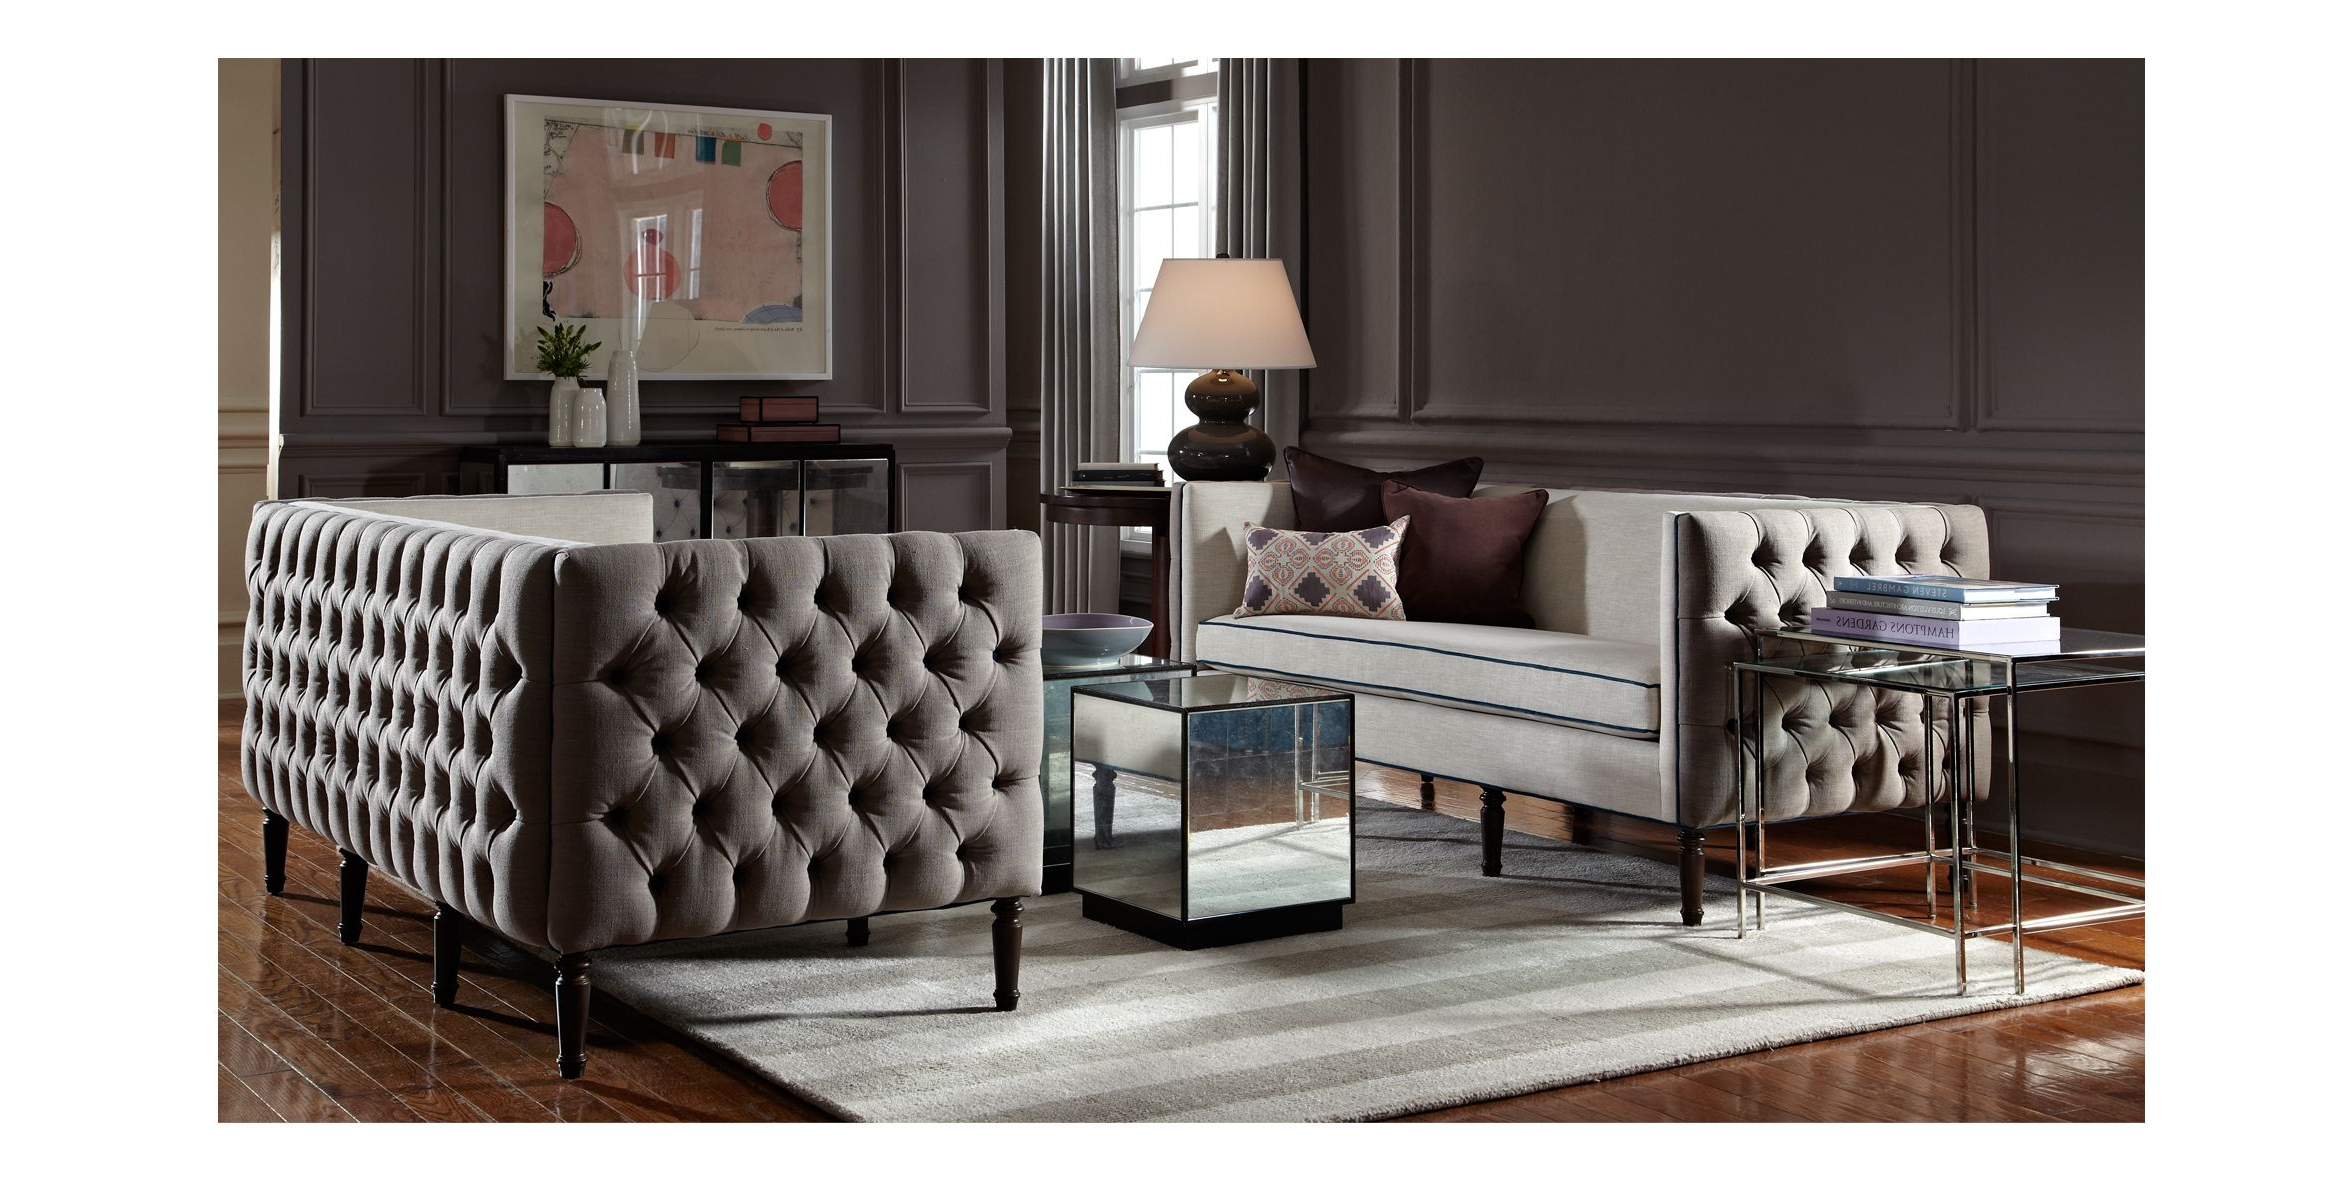 Modern Tufted Sofa – Google Search | Turn Of The Century Moderne In Parsons Grey Solid Surface Top & Dark Steel Base 48X16 Console Tables (Gallery 20 of 20)